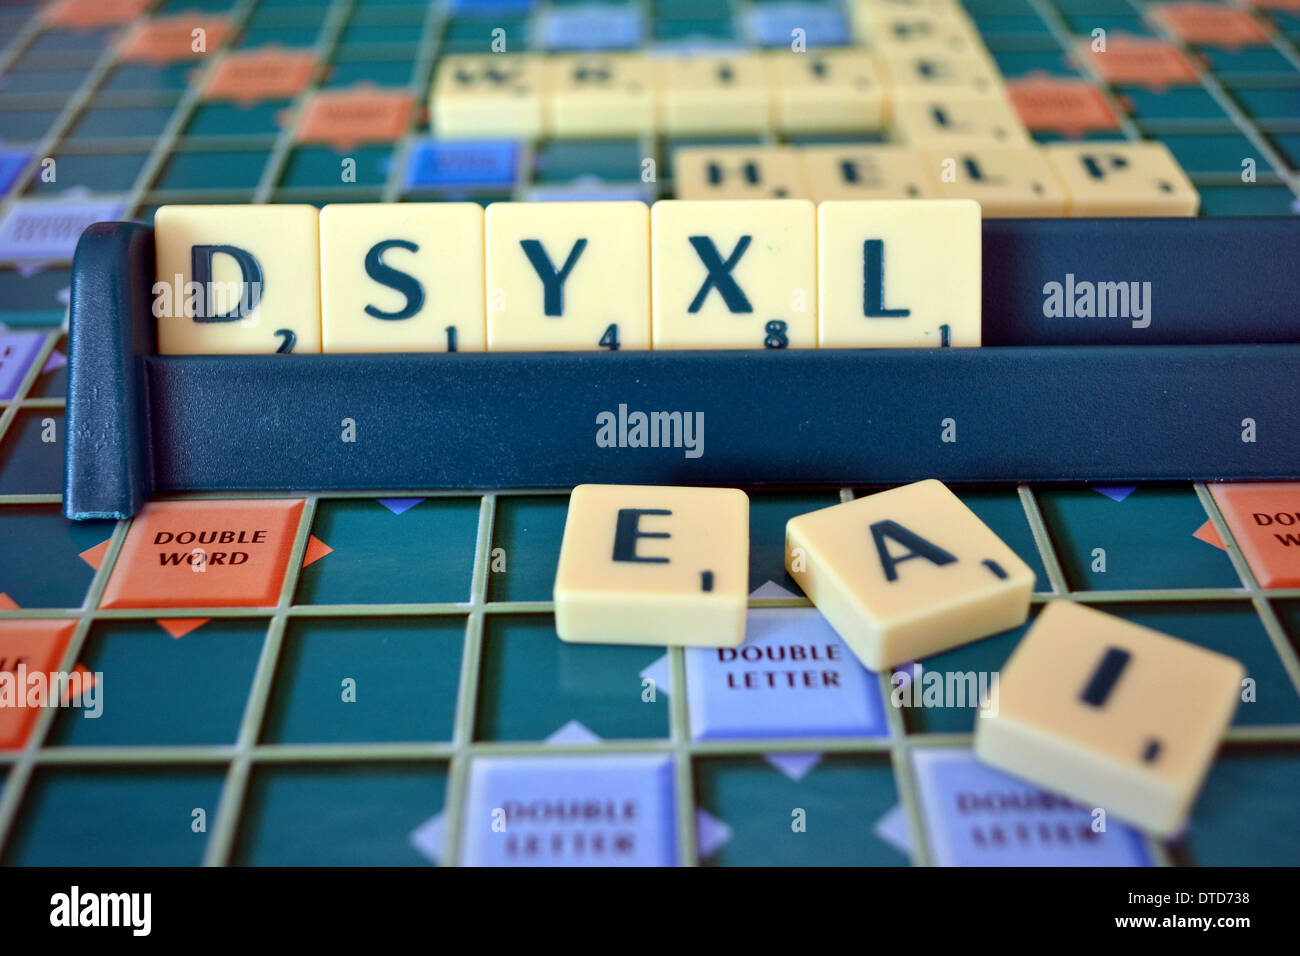 Spelling Game Stock Photos & Spelling Game Stock Images - Alamy